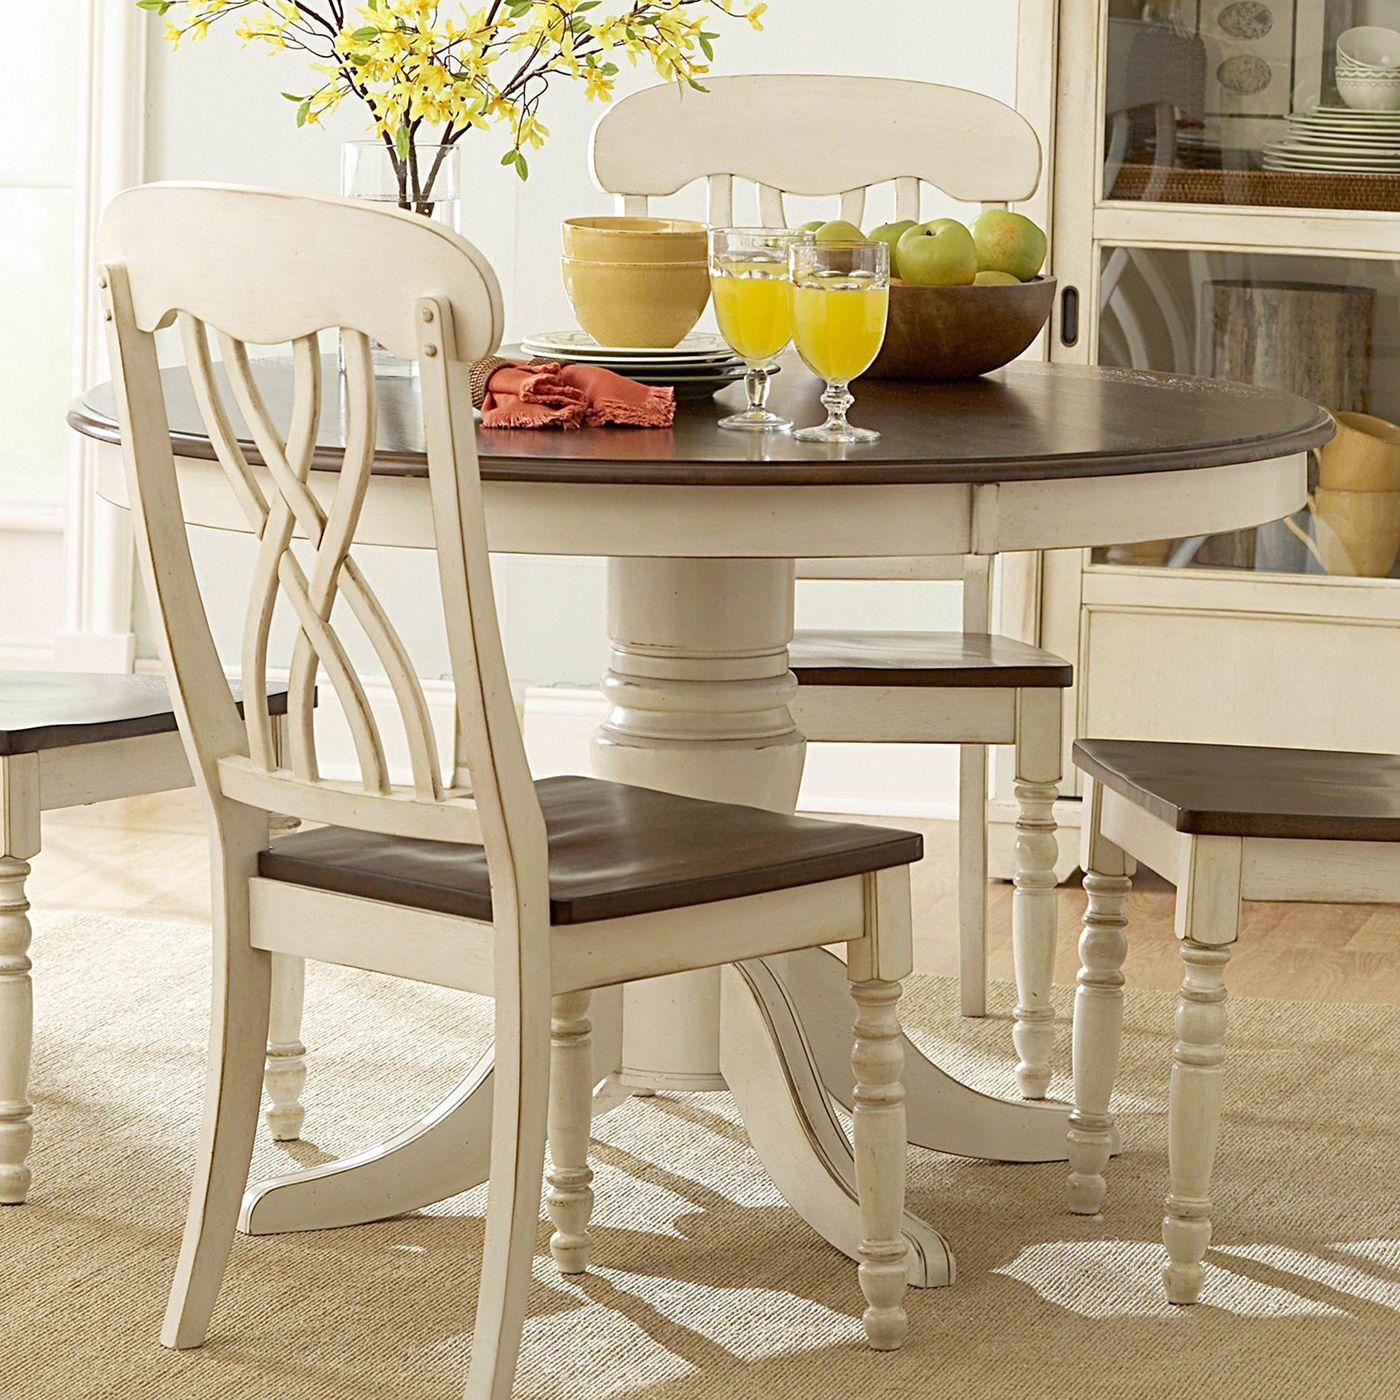 Ohana Round Dining Table In Antique White Is A Part Of 1393 Series From  Homelegance